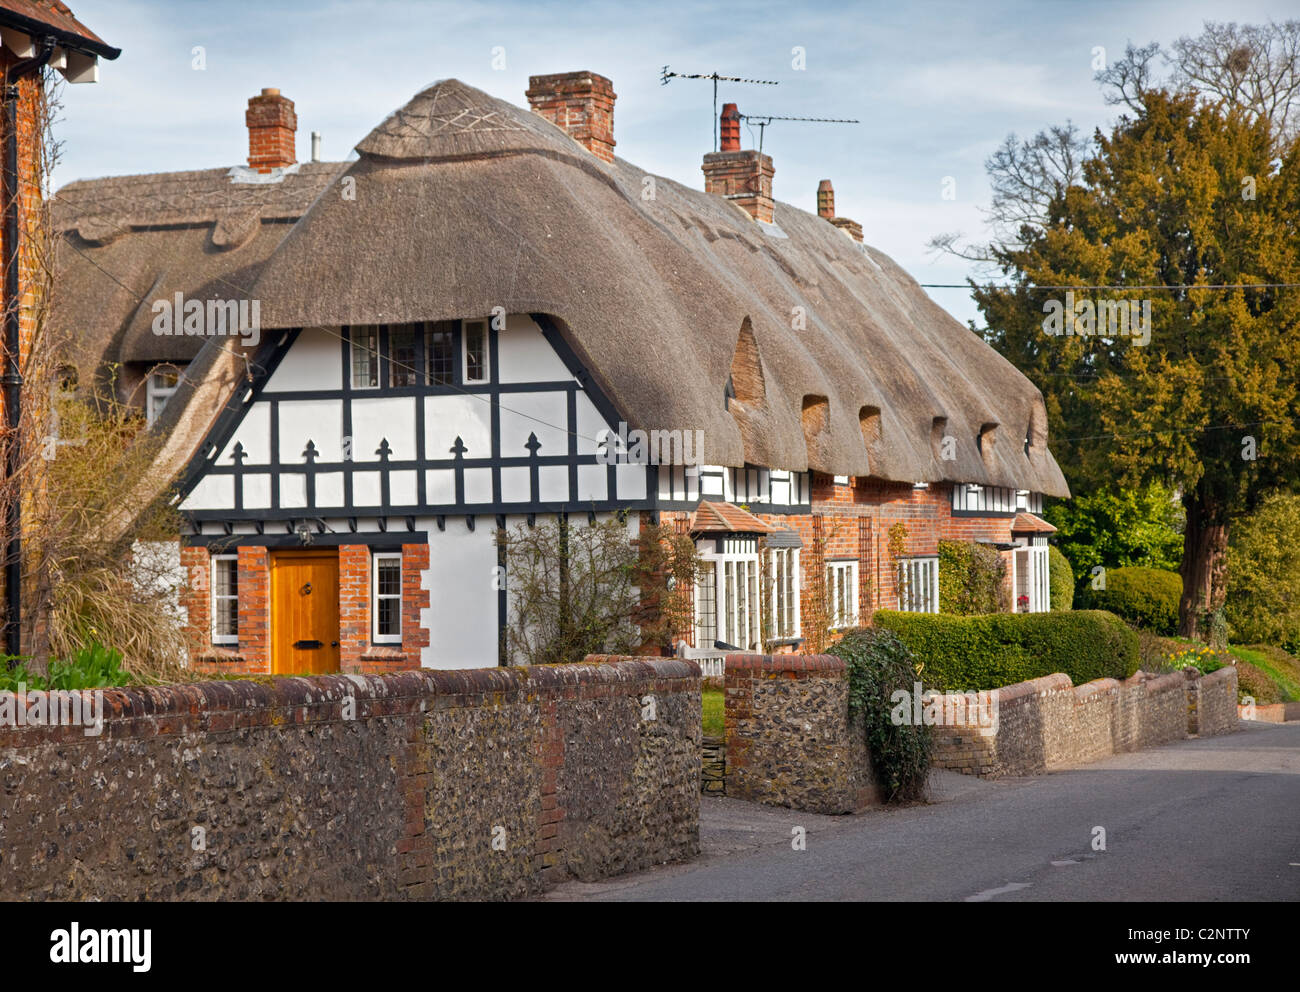 Cottages in Crawley, Hampshire, England - Stock Image